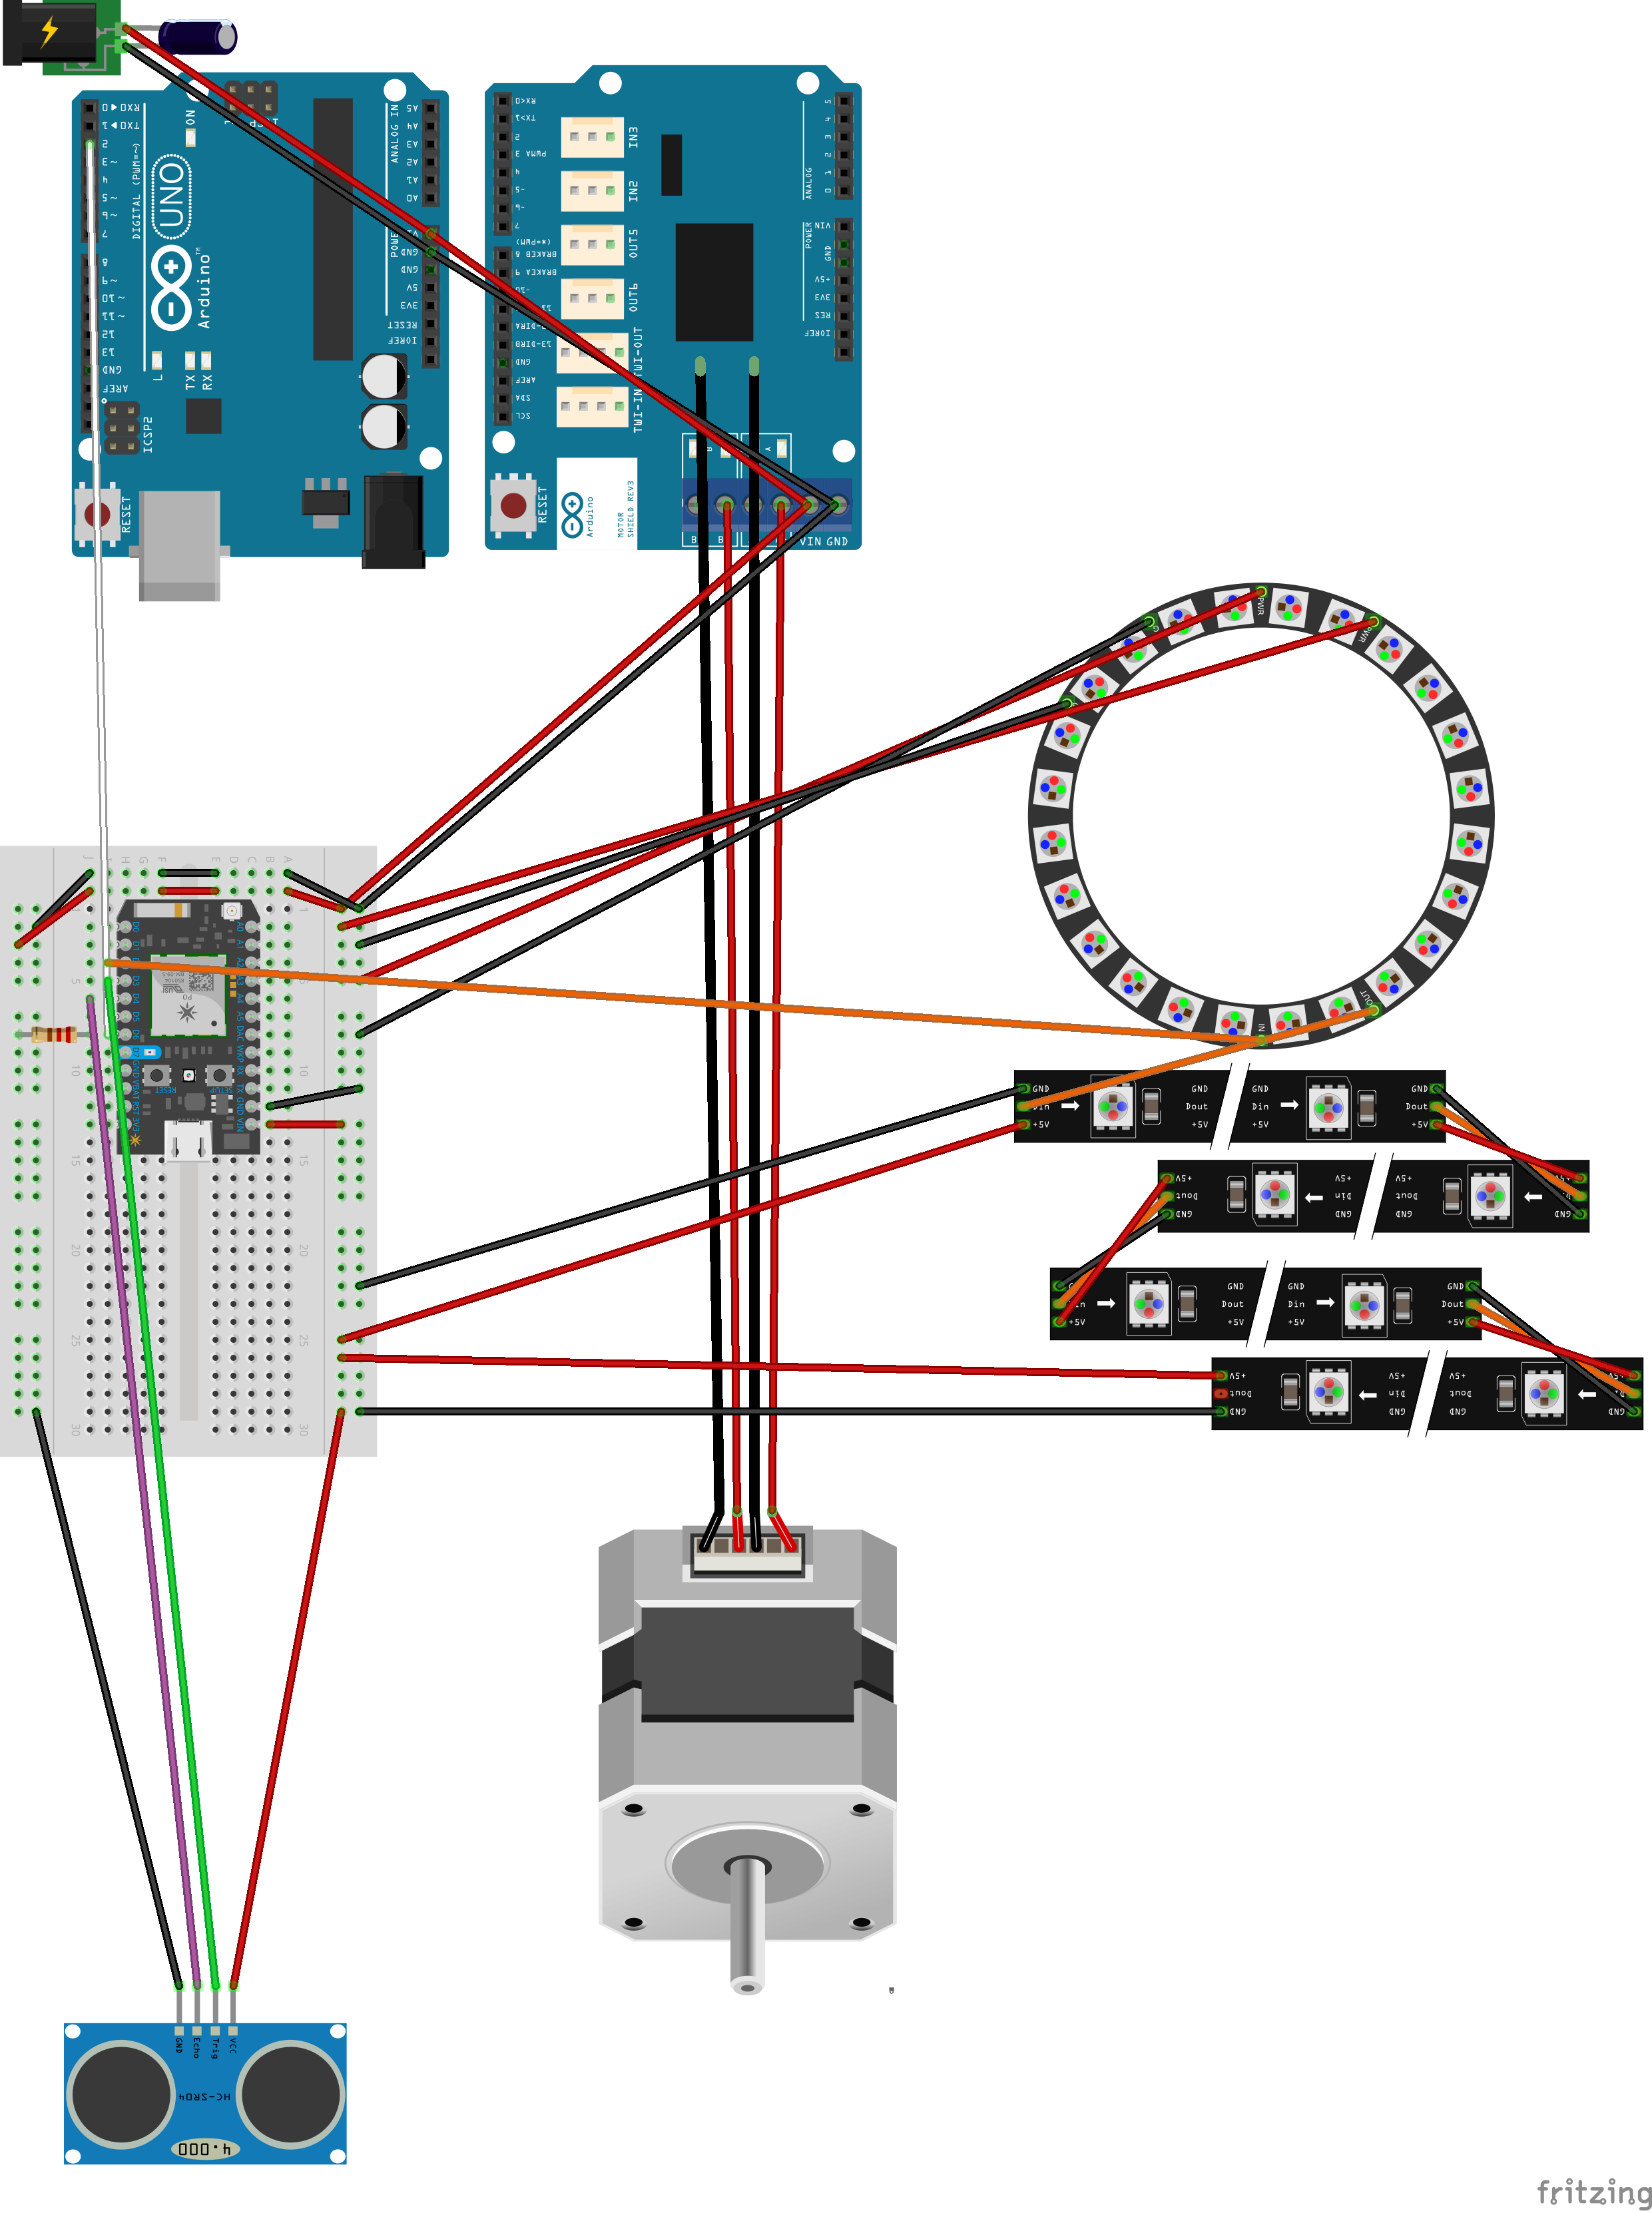 Wiring Diagram For Wi Fi Wifi Death Lamp Wifideathlamp Bb